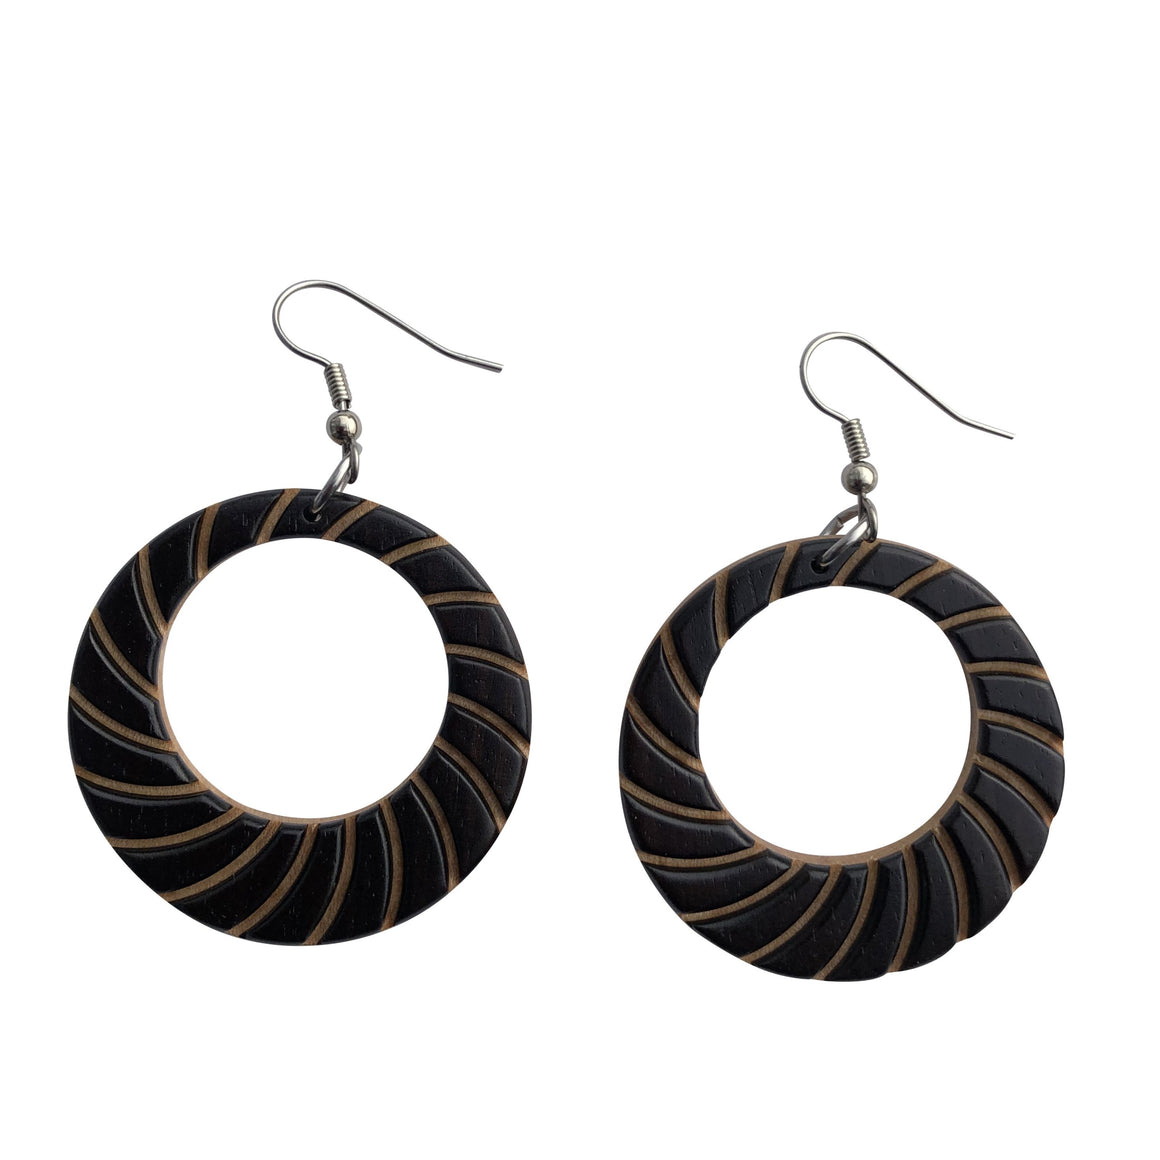 Earrings - Large Hoop